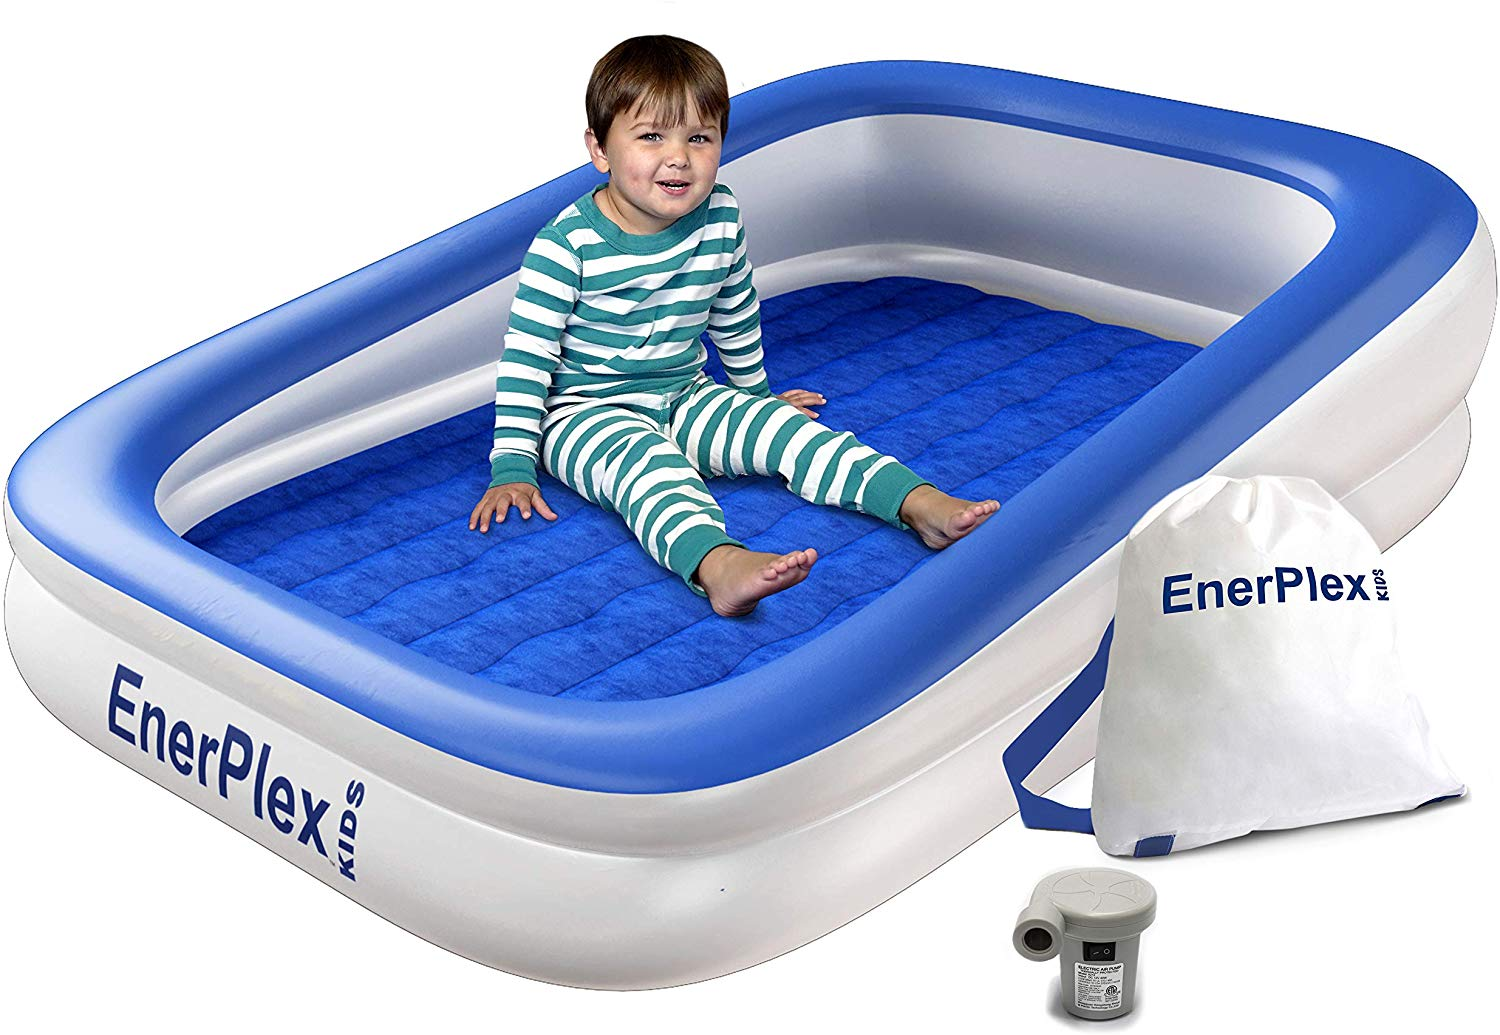 Enerplex Kids Inflatable Travel Bed With High Speed Pump Portable Air Mattress For Kids Blow Up Mattress With Sides Built In Safety Bumper Blue 2 Year Warranty Walmart Com Walmart Com